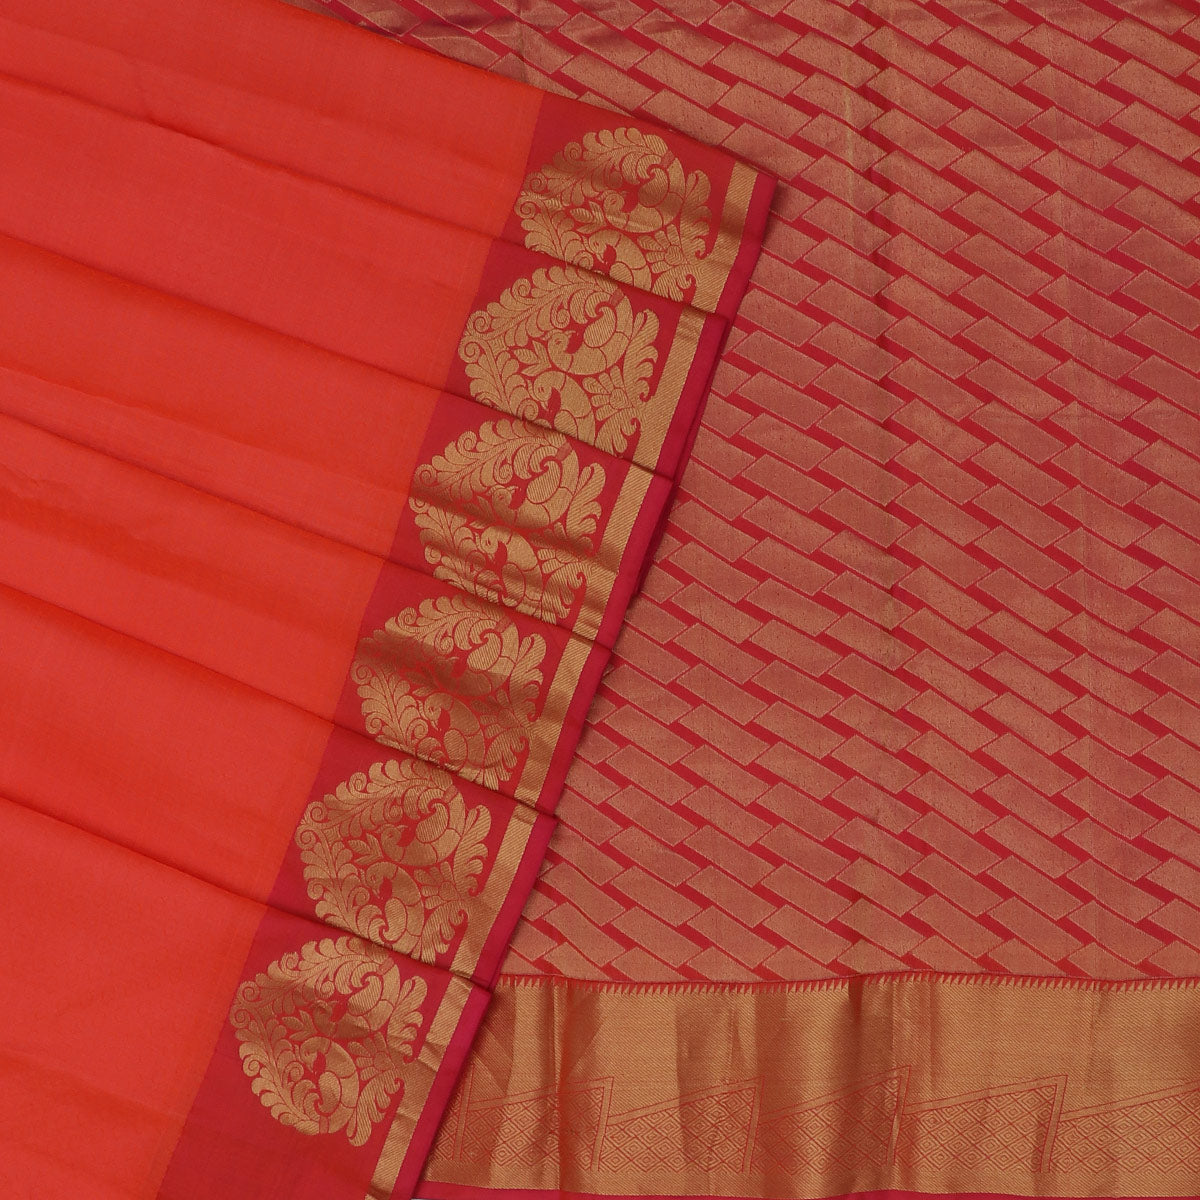 Kanjivaram Silk Saree Orange and Pink with Peacock zari border